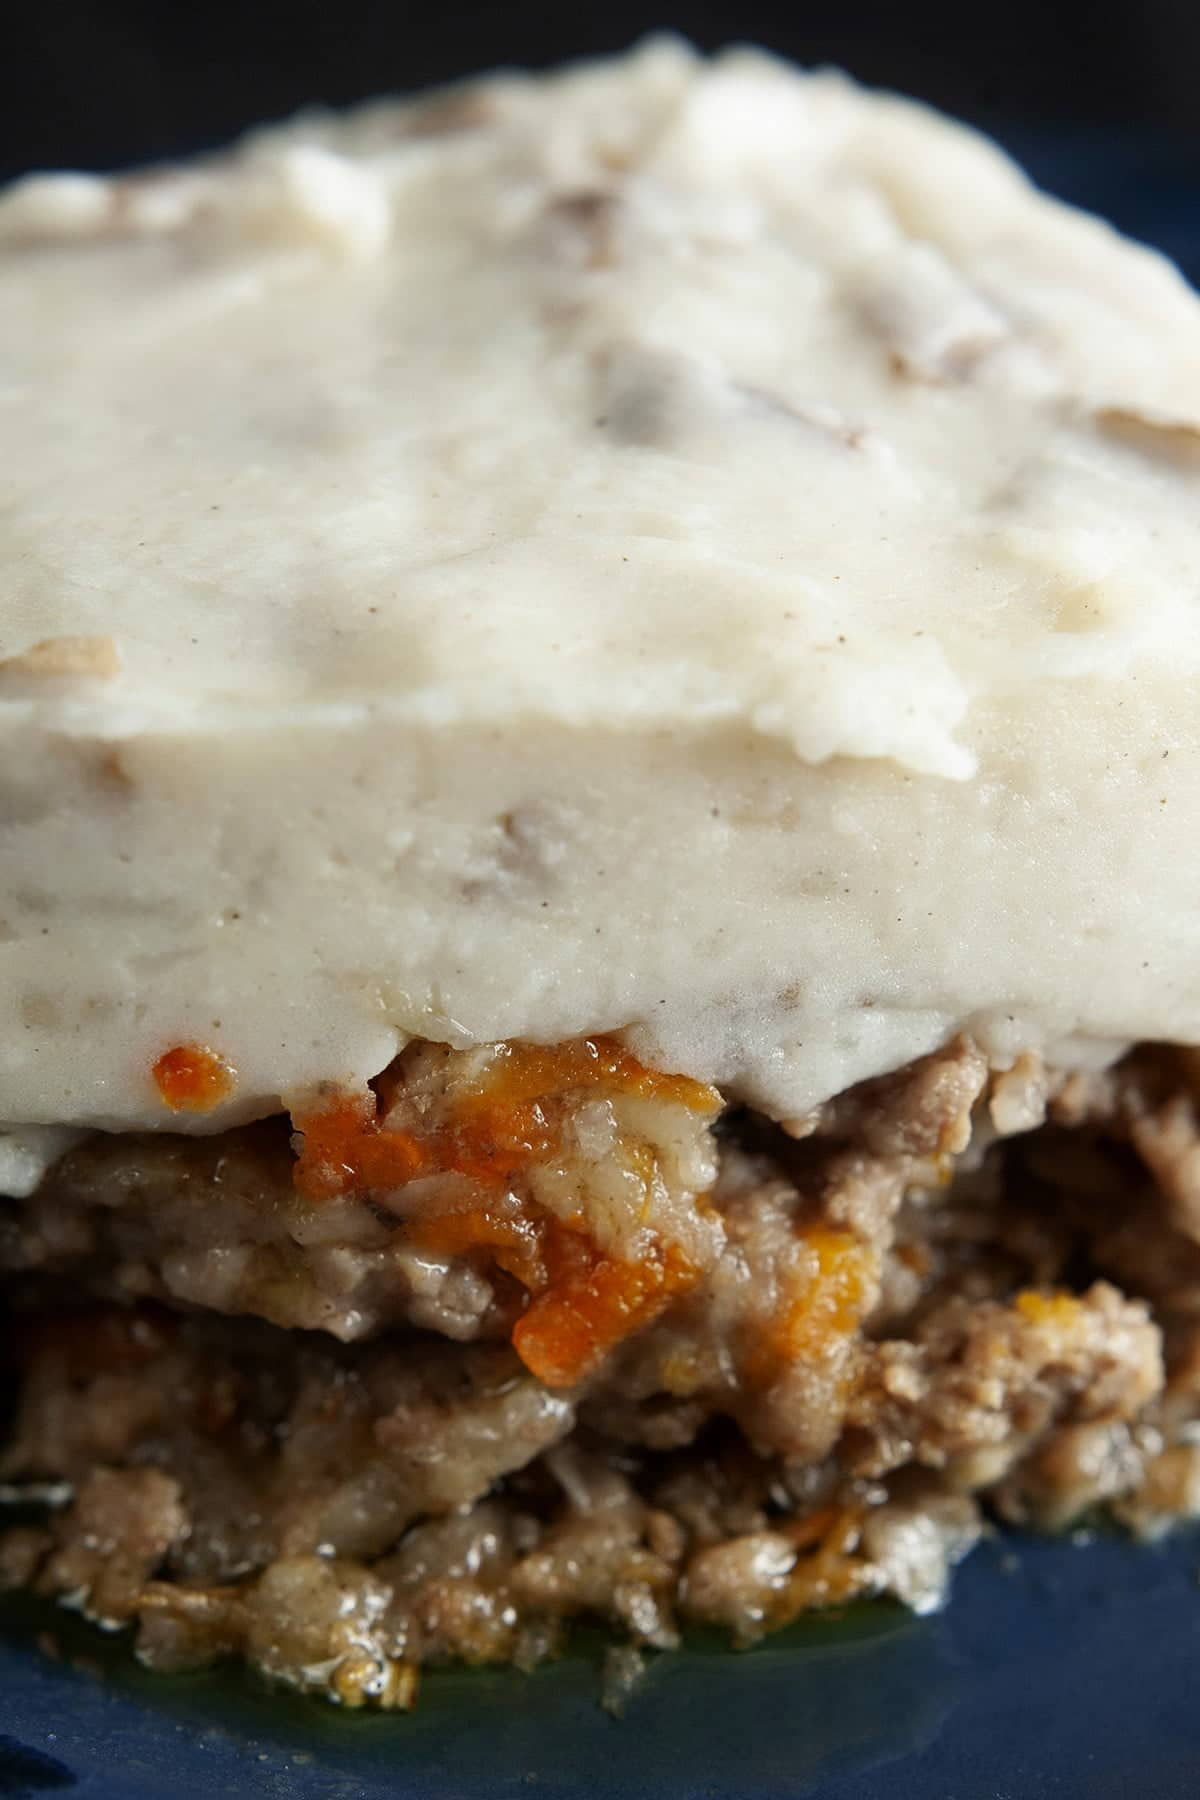 A square serving of shepherd's pie is centered on a blue plate.  Carrots and parsnips are visible in the meat/veg base, and it's topped with a thick layer of mashed potatoes.